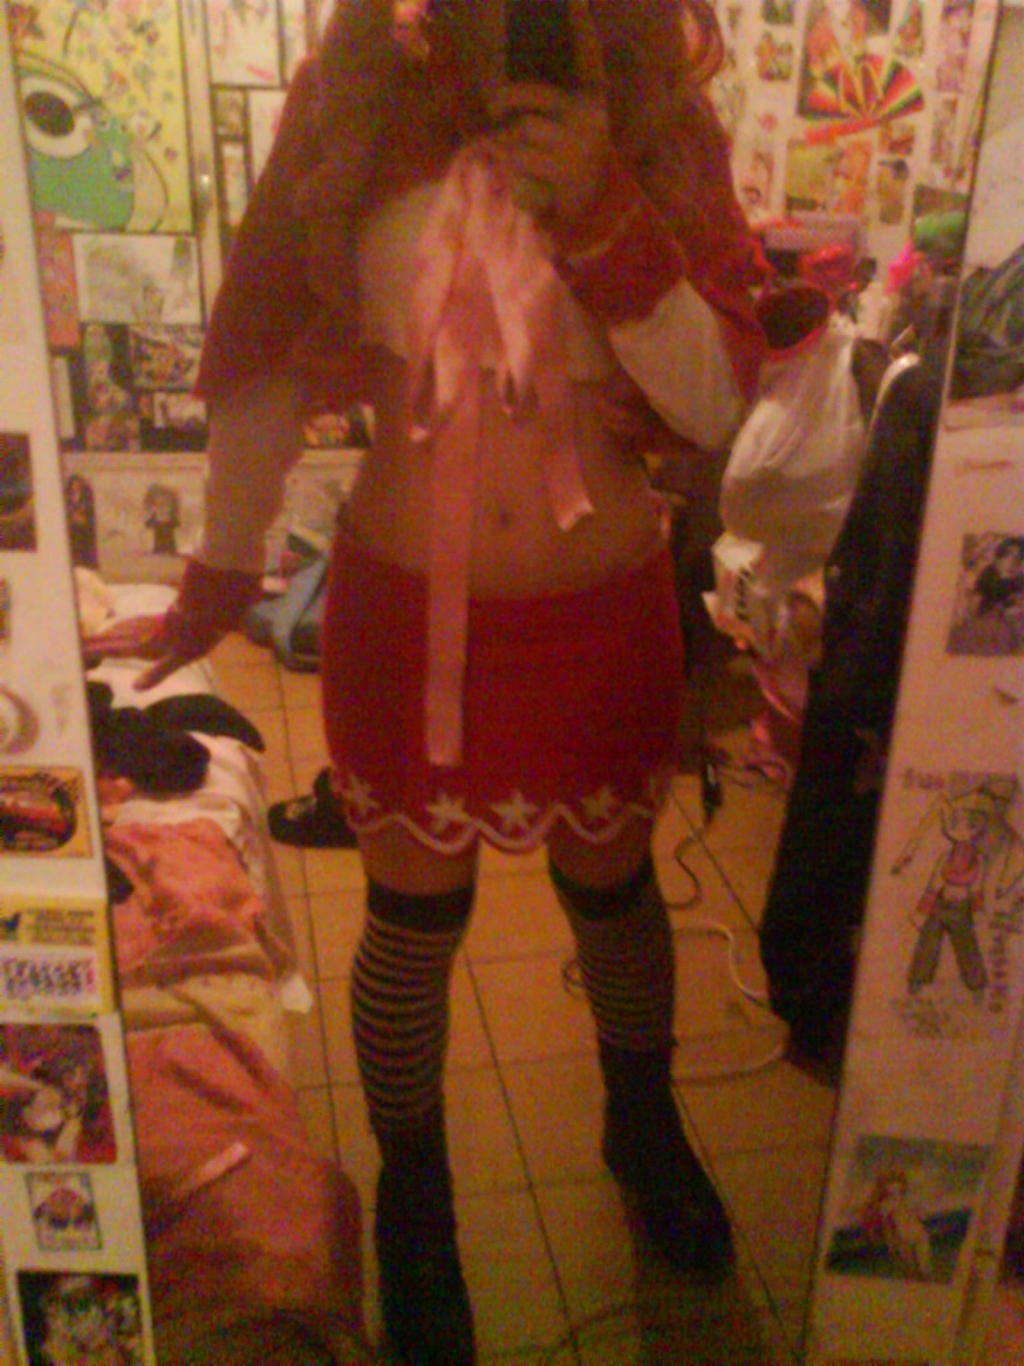 Perona Cosplay (not Finished) by LuffySwan